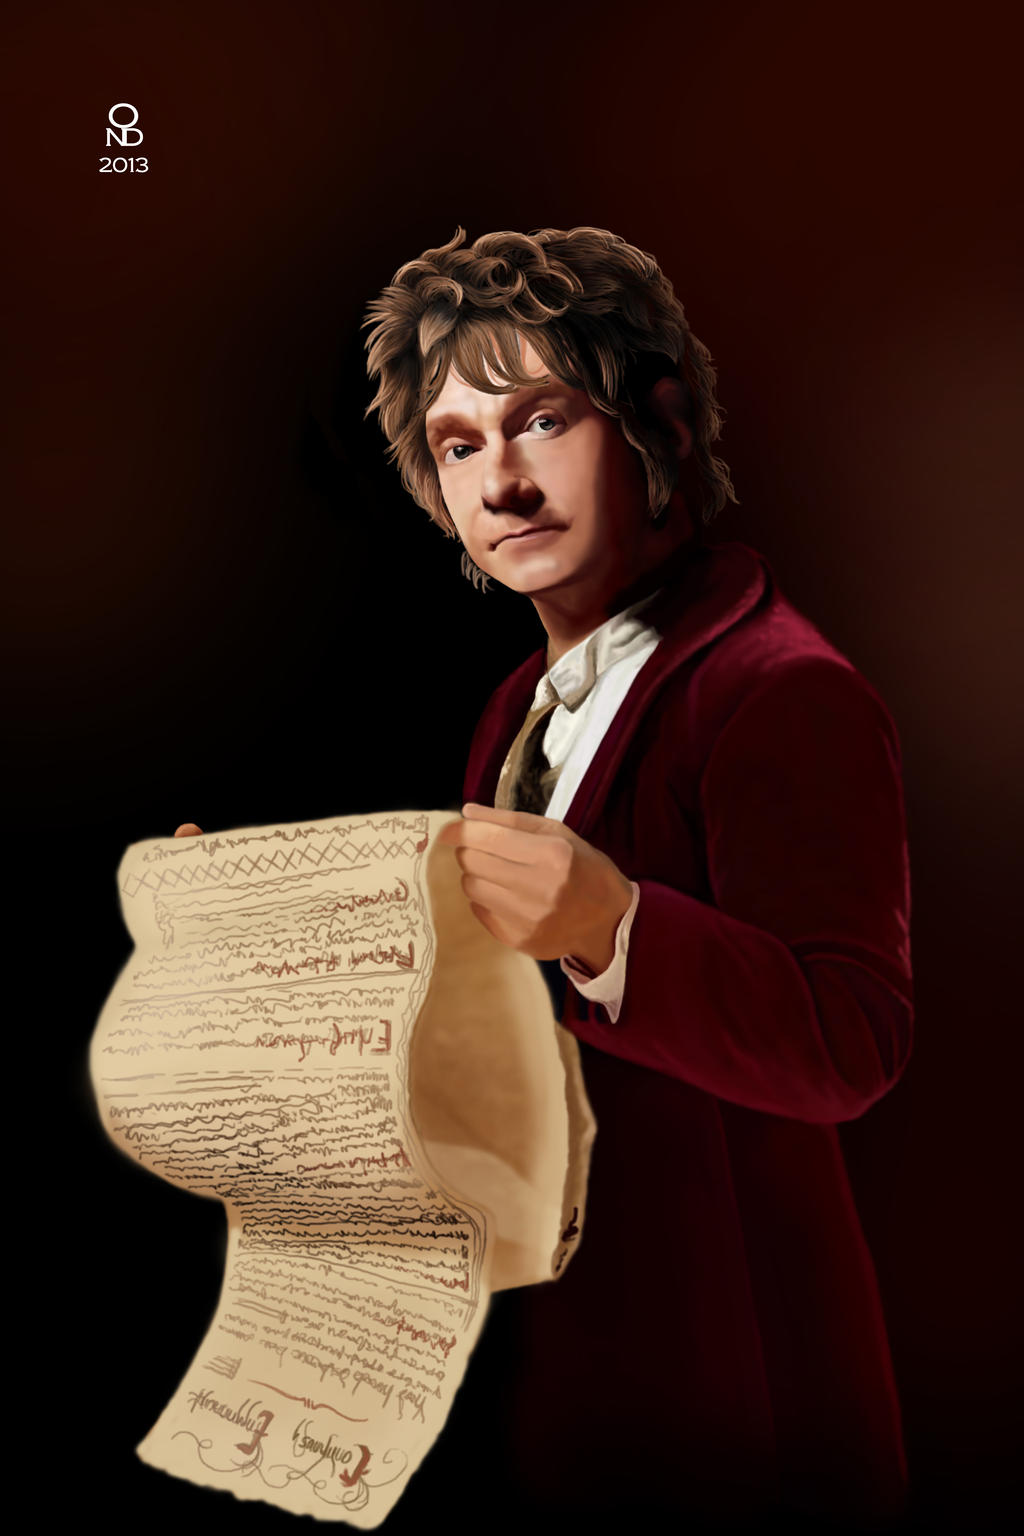 A burglar you said? - Bilbo Baggins by Ondjage